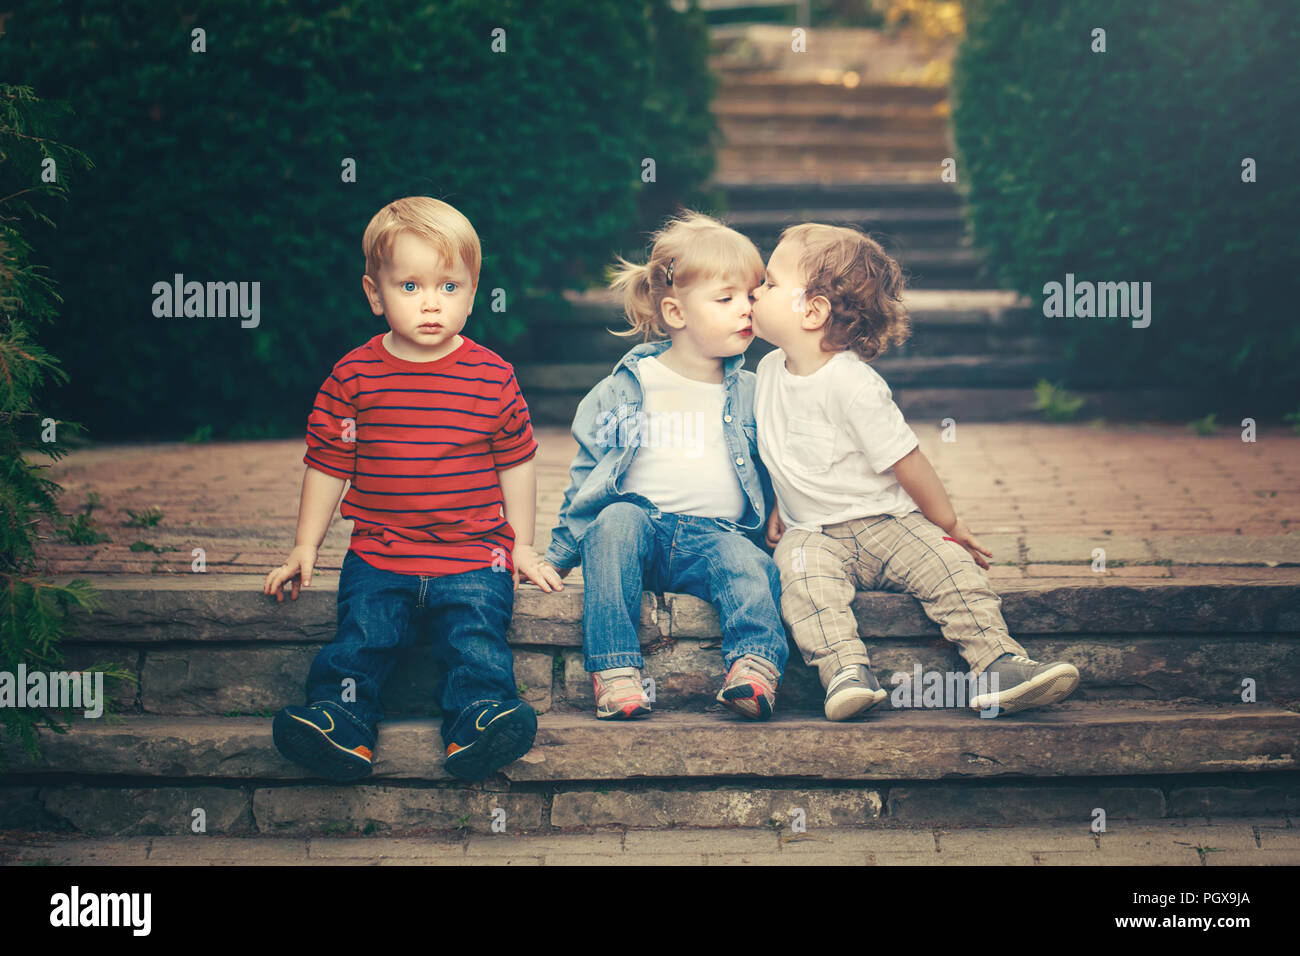 Group of three cute funny adorable white Caucasian children toddlers boys girl sitting together kissing each other. Love jealousy friendship childhood - Stock Image